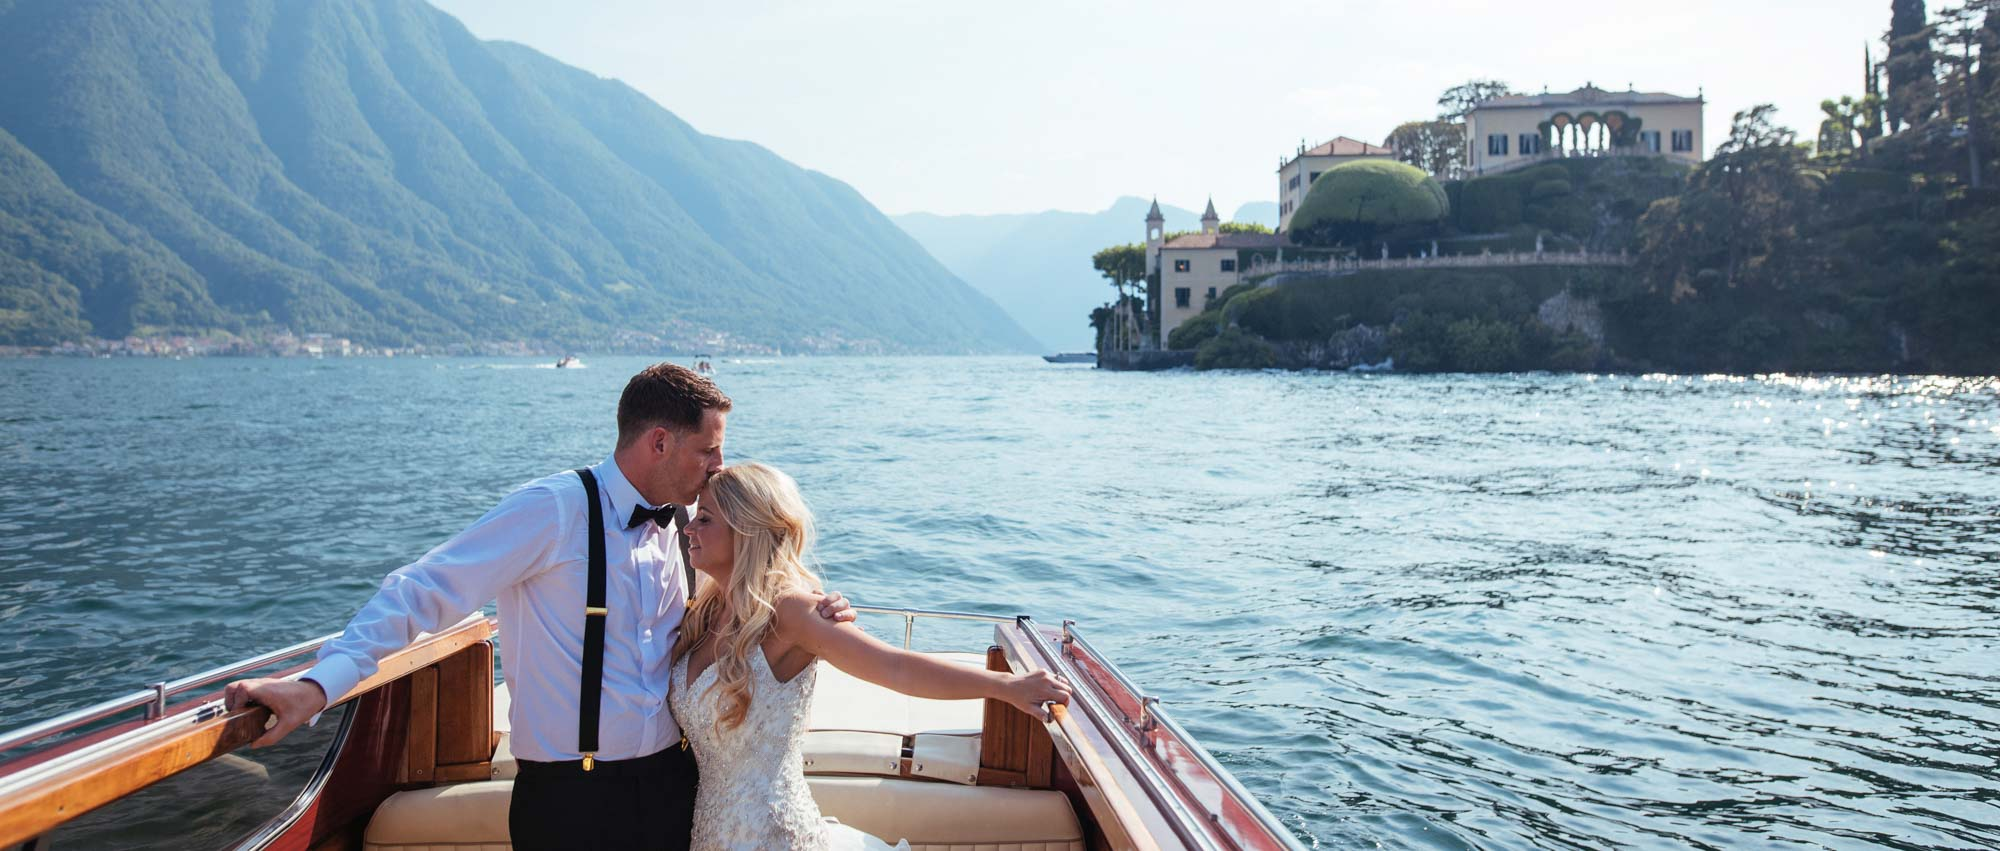 lake como wedding 001 - Destination Wedding in Lake Como - Katie & Jamie